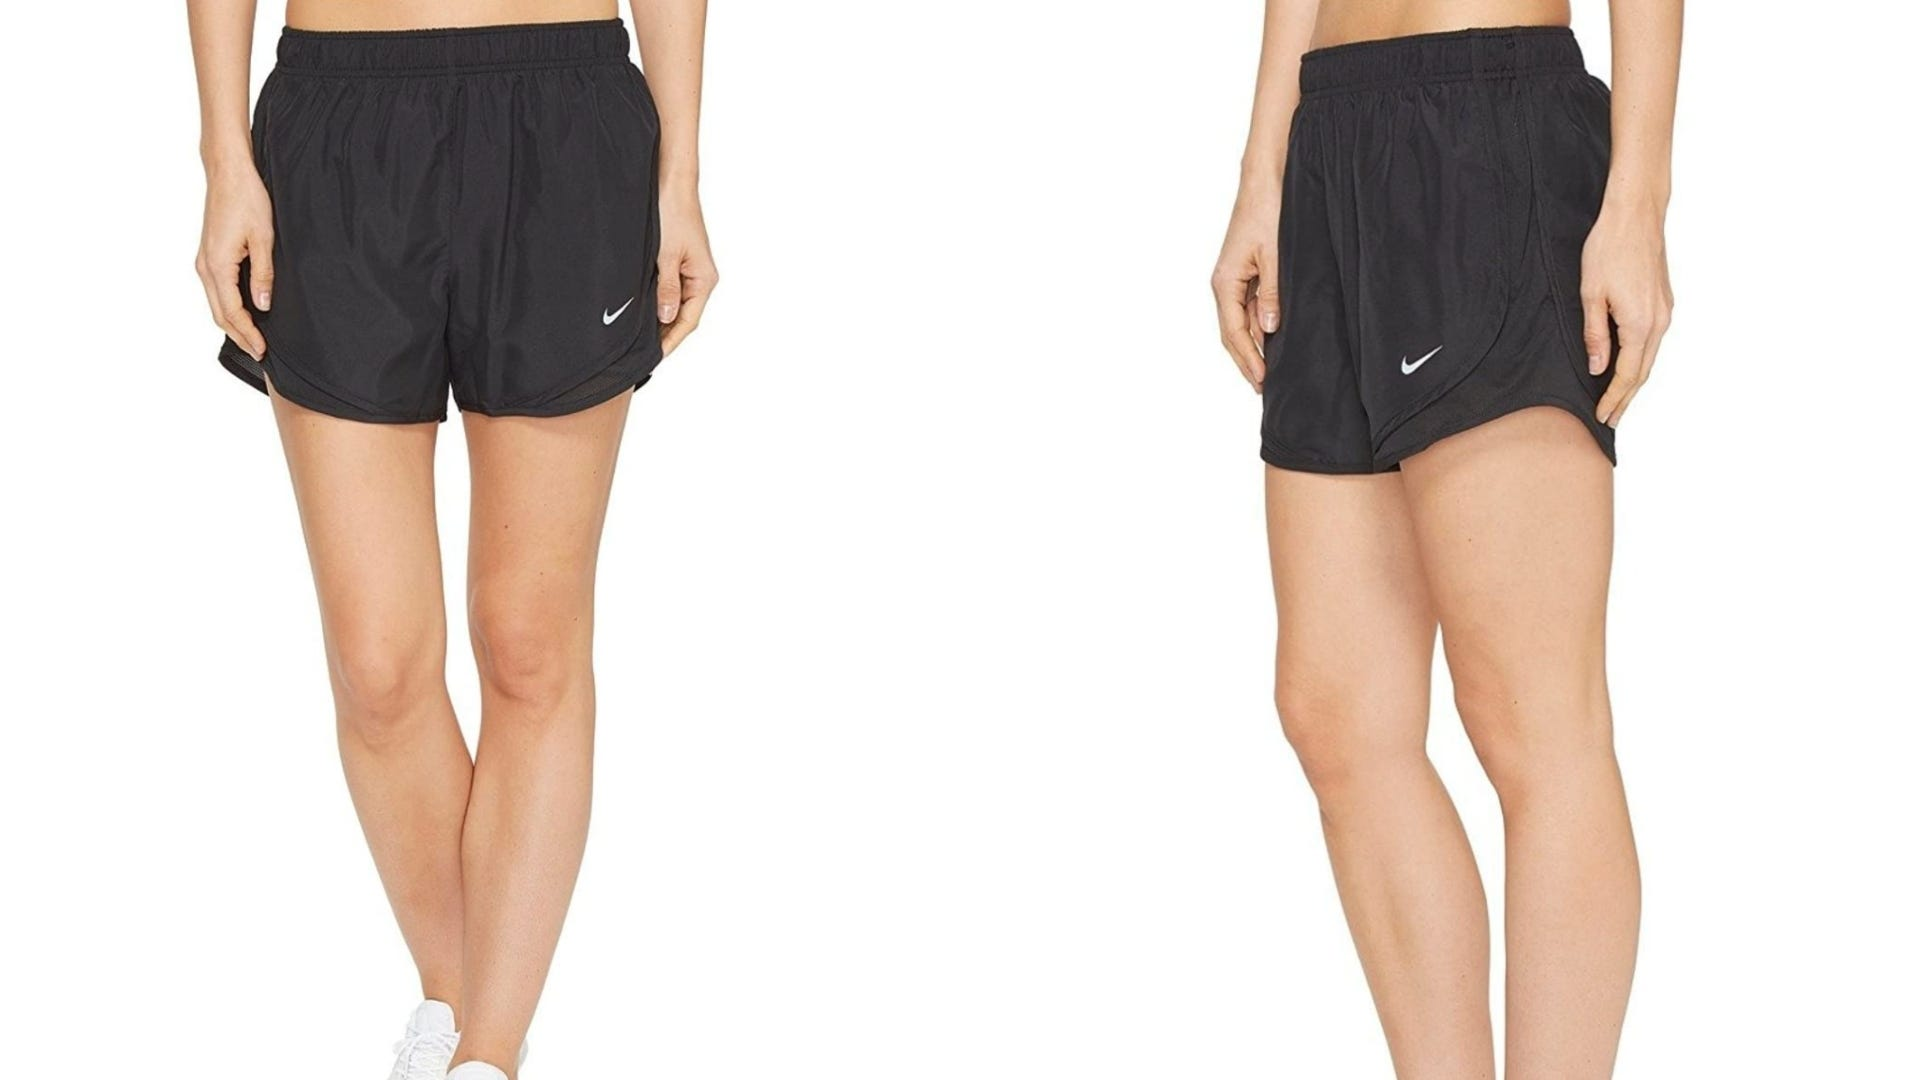 Two photos of a woman wearing a pair of black running shorts.